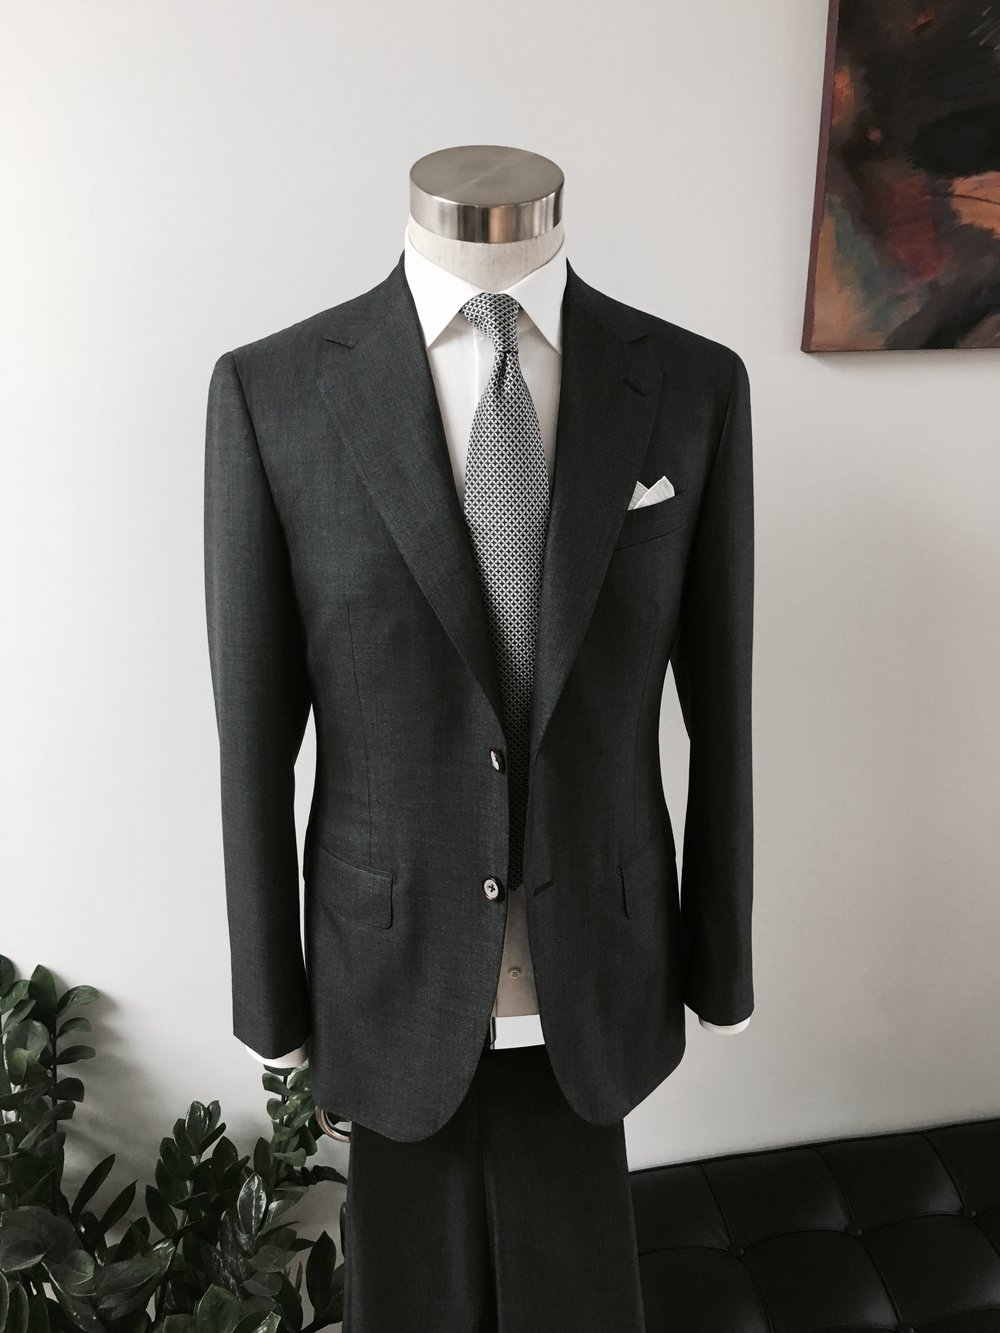 Bespoke Suit in 170s Wool Silk, 5,000 Handmade Stitches, 50 Man Hours. From HK$30,000.    (Only Available in Bespoke & MTM)